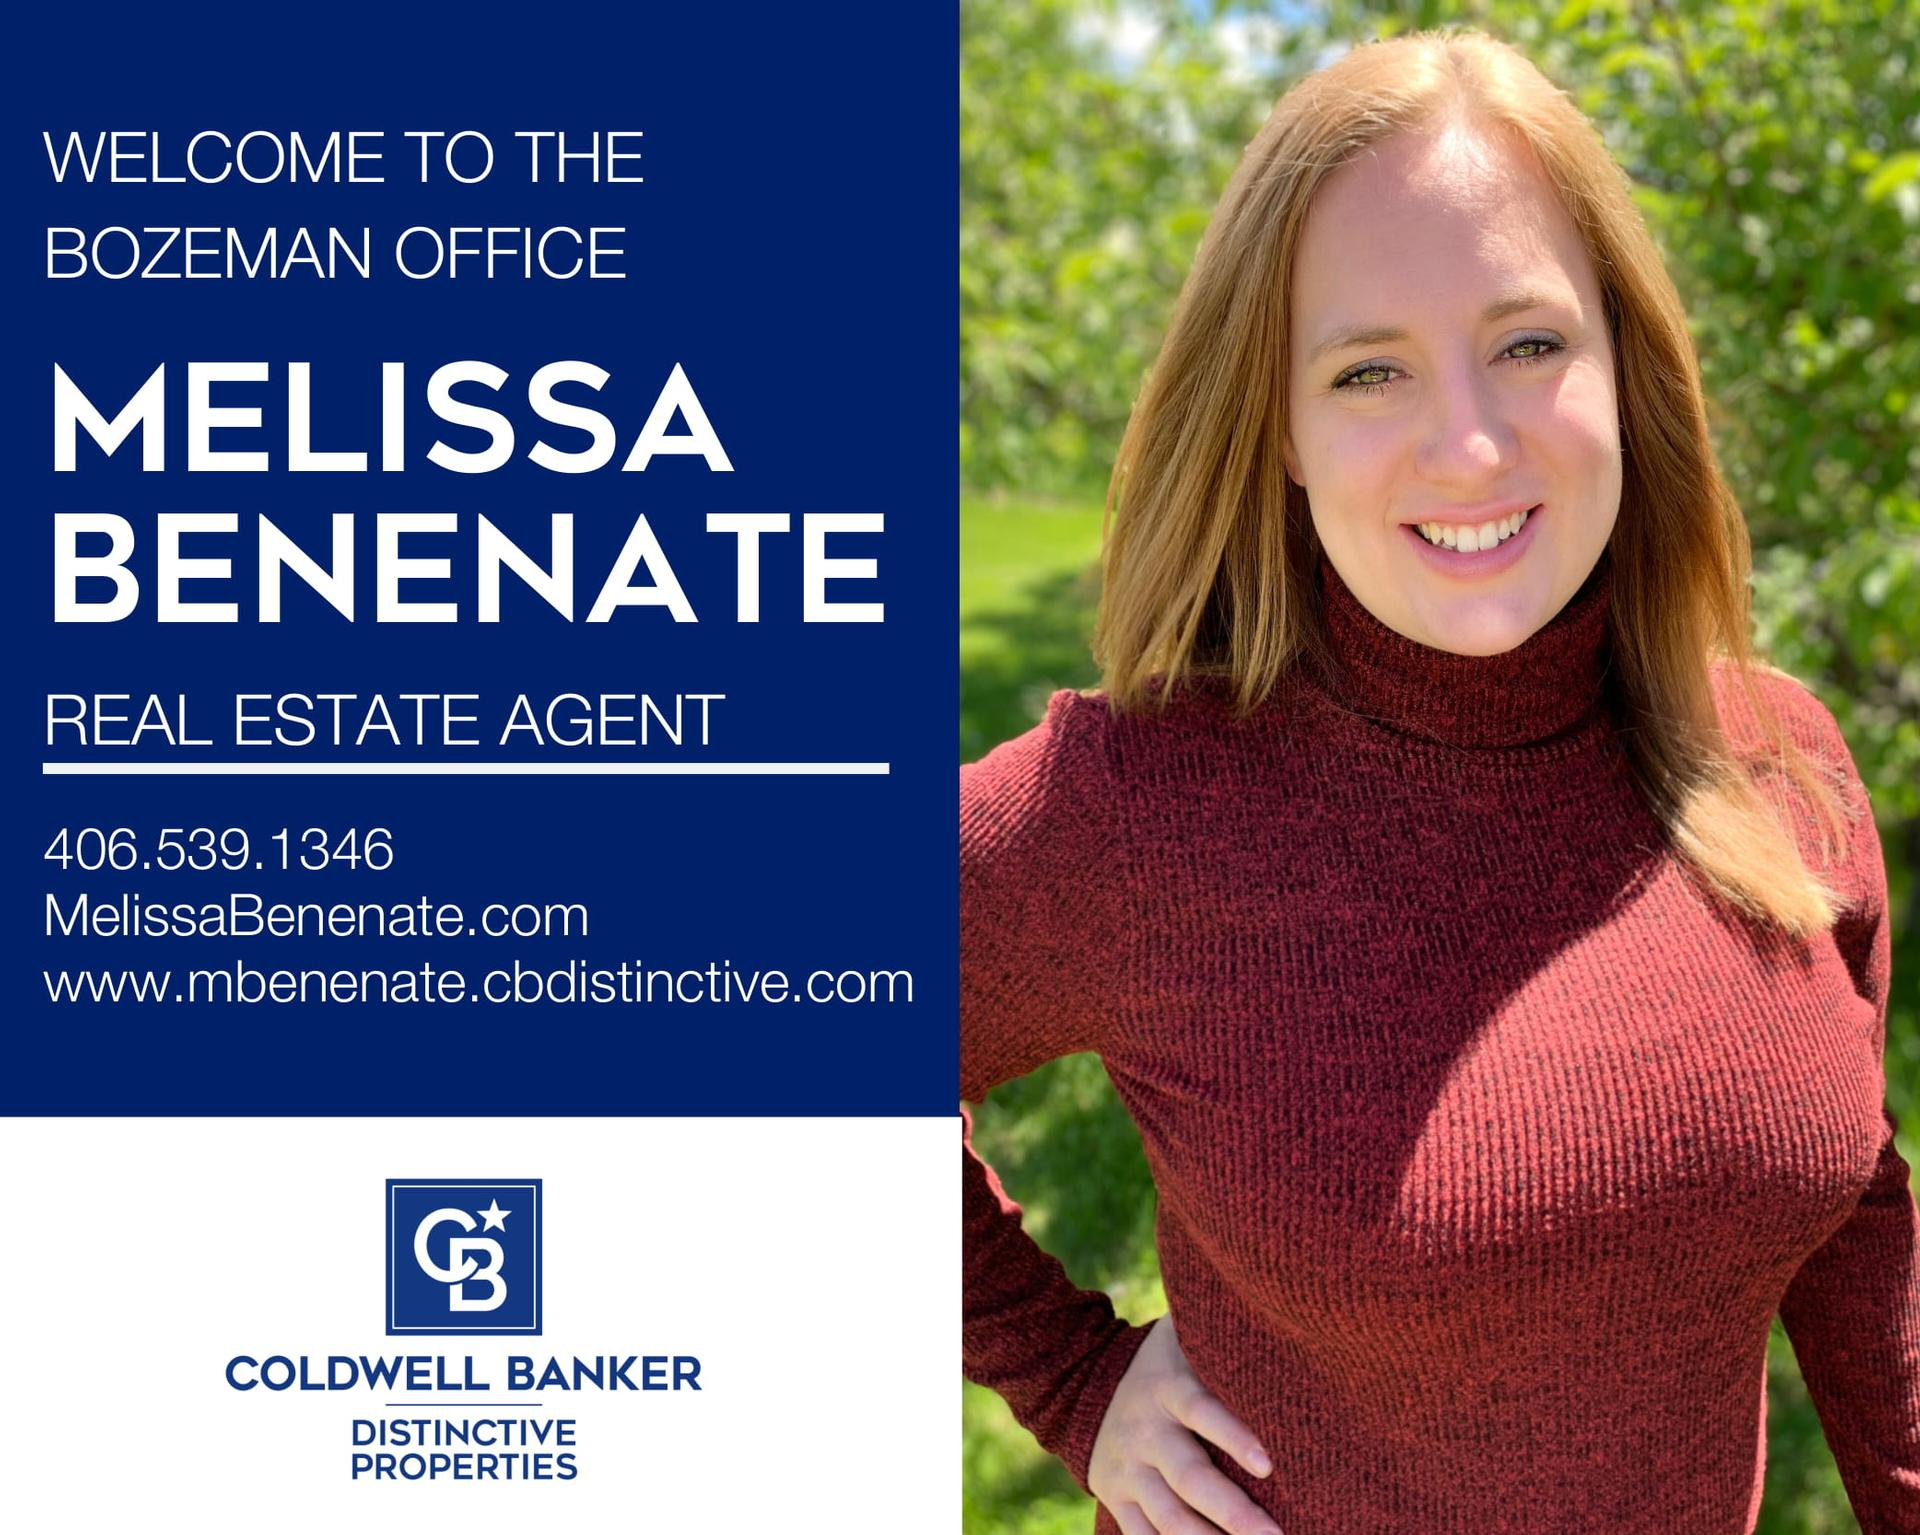 Please help us welcome Melissa Benenate to our Bozeman Office. Main Photo